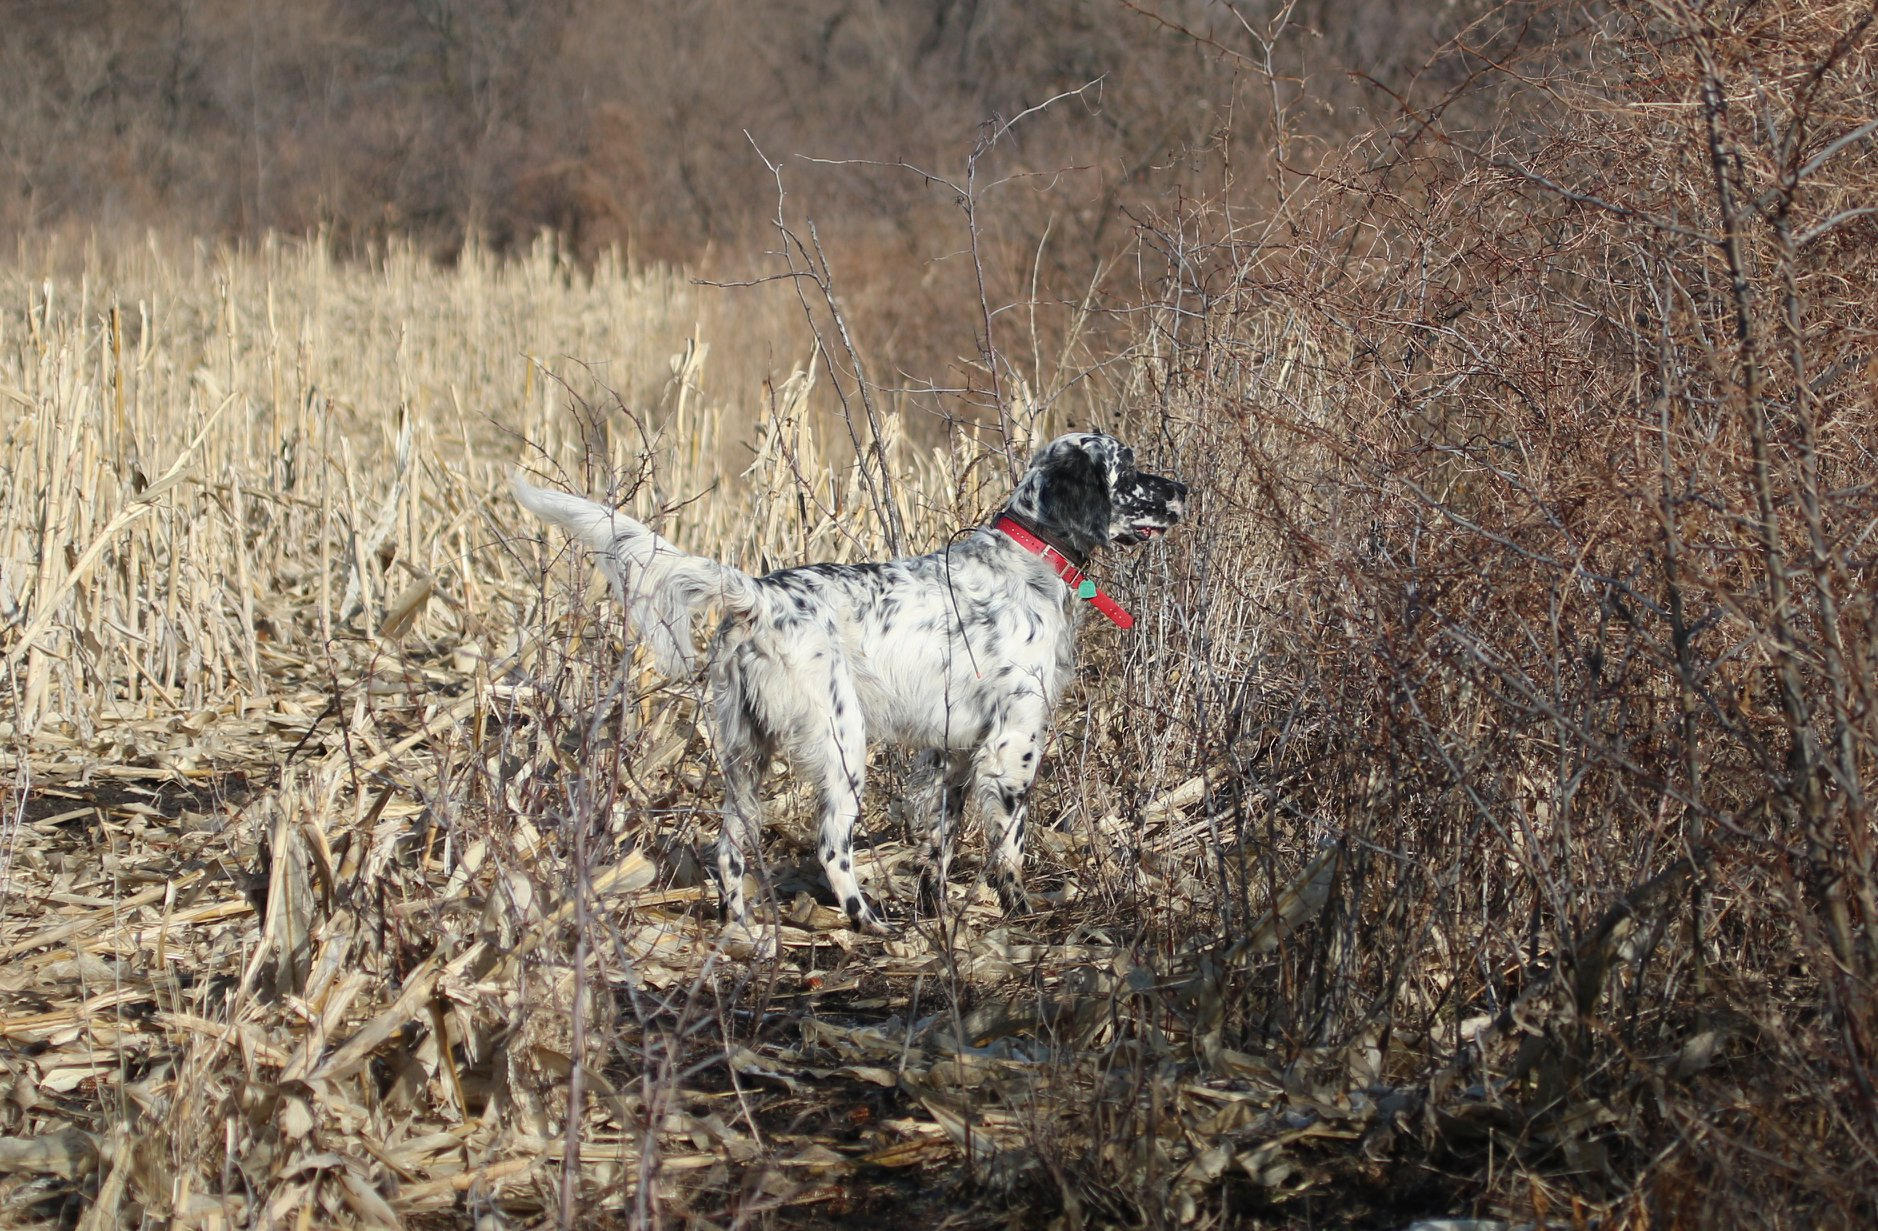 Sugar Creek Scout, photo compliments of Fran Thompson